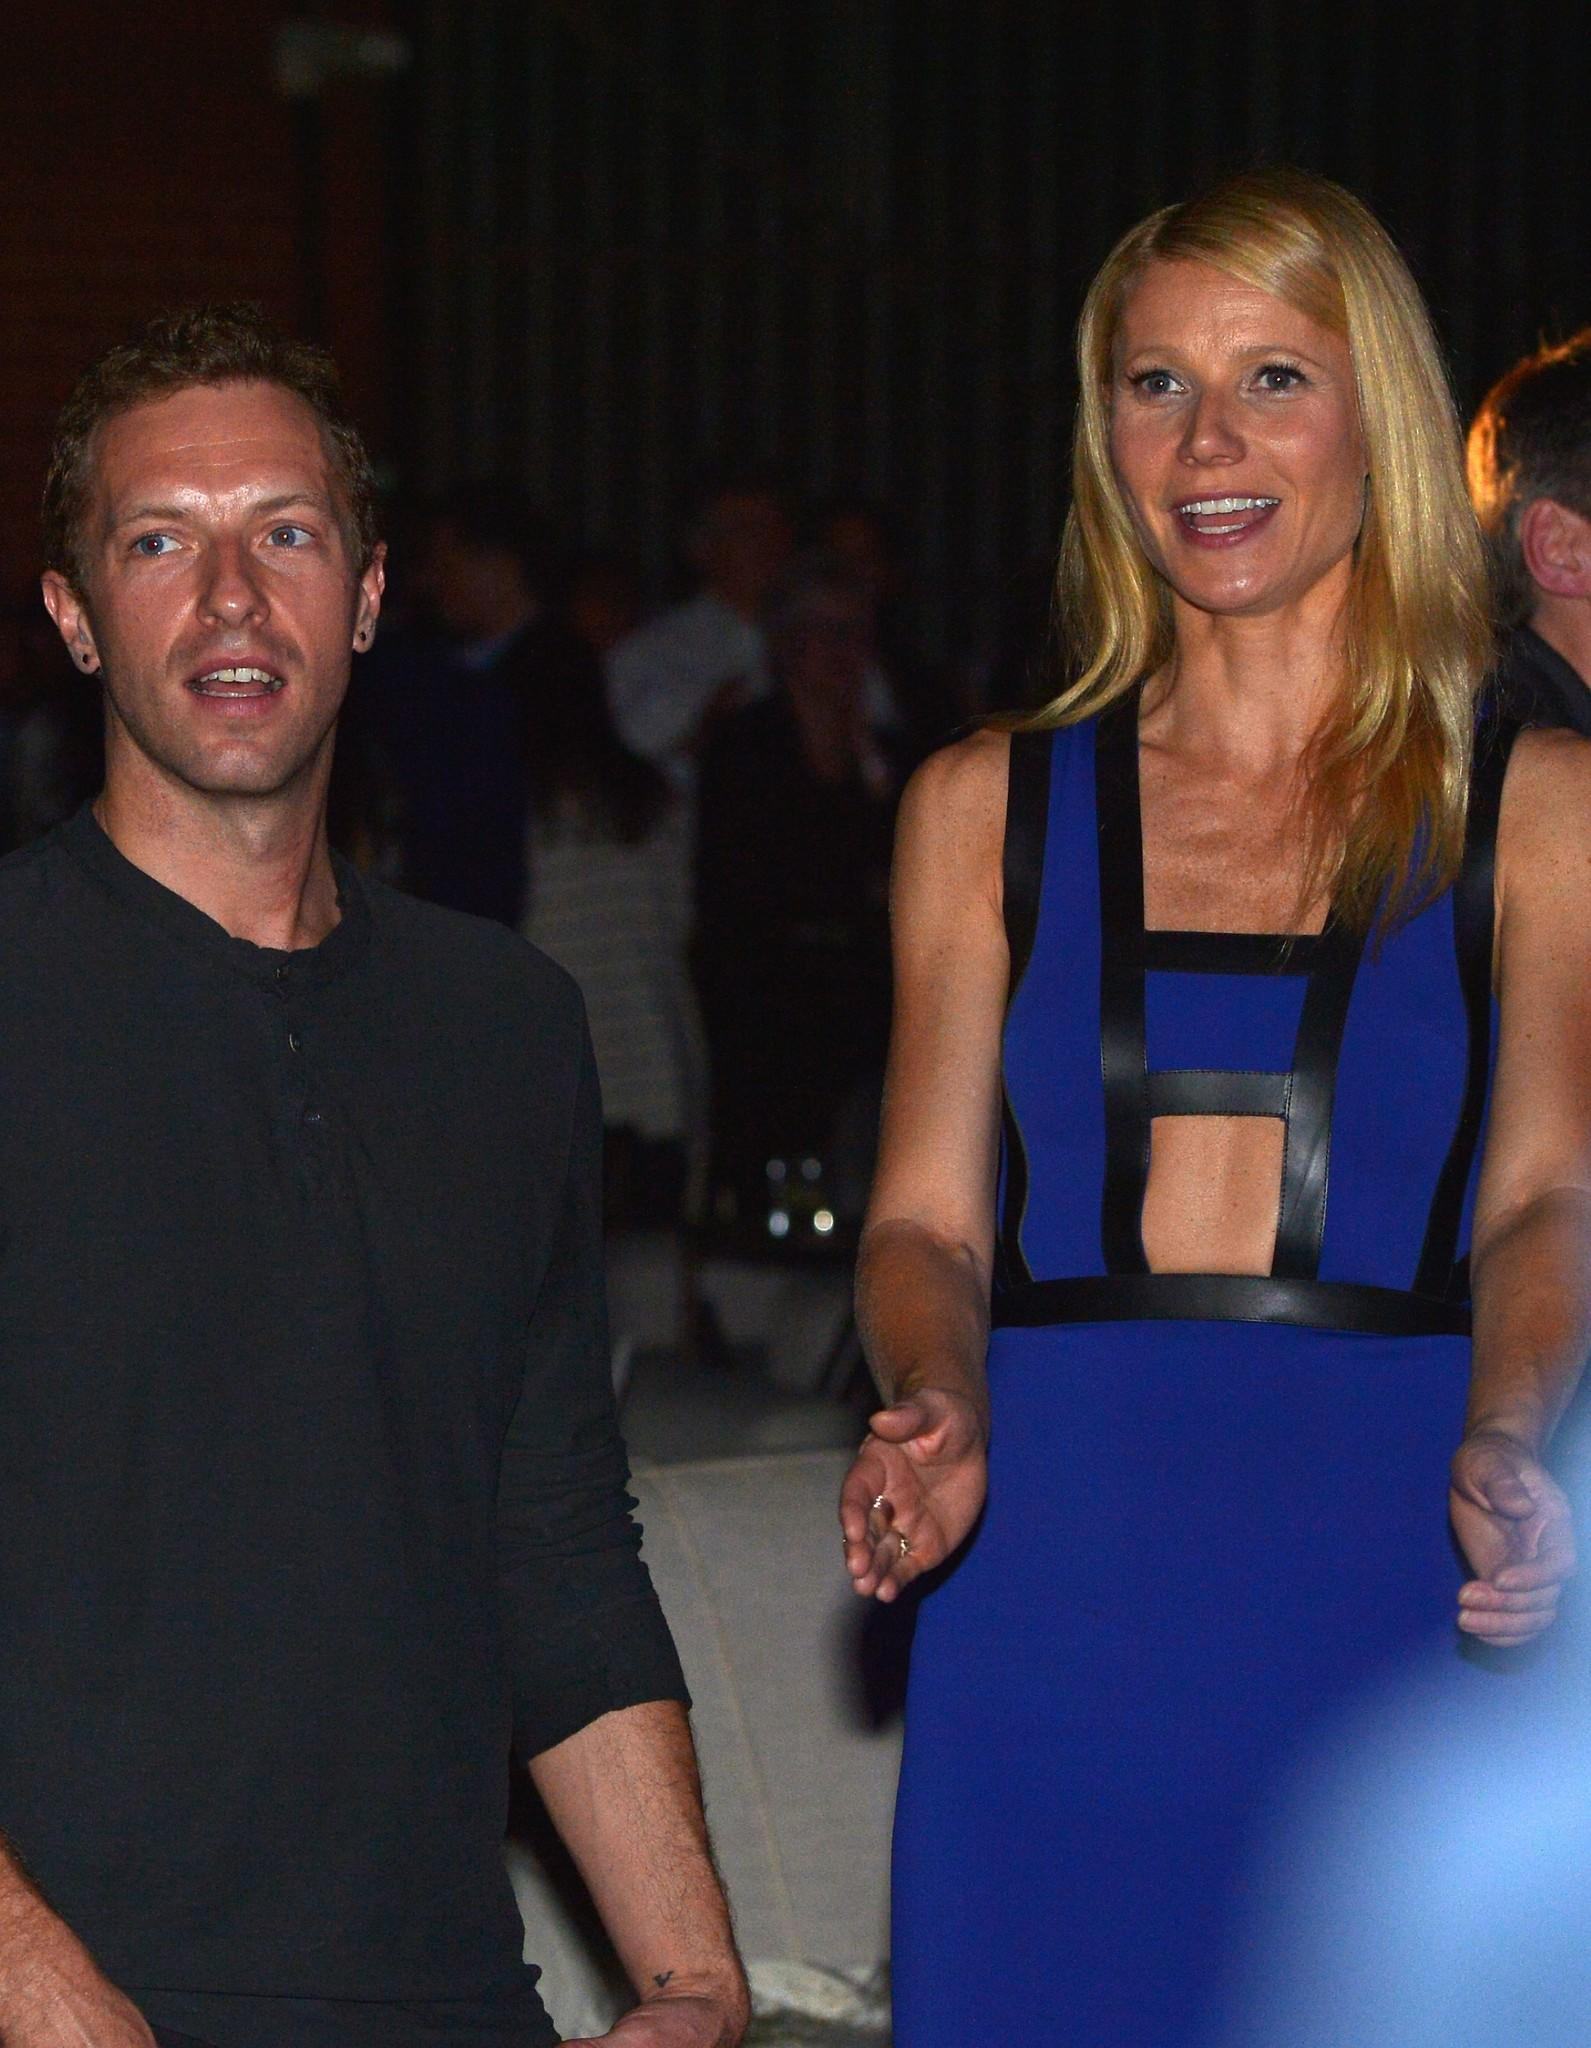 Singer/Songwriter Chris Martin (L) and actress Gwyneth Paltrow attend a charity event together.